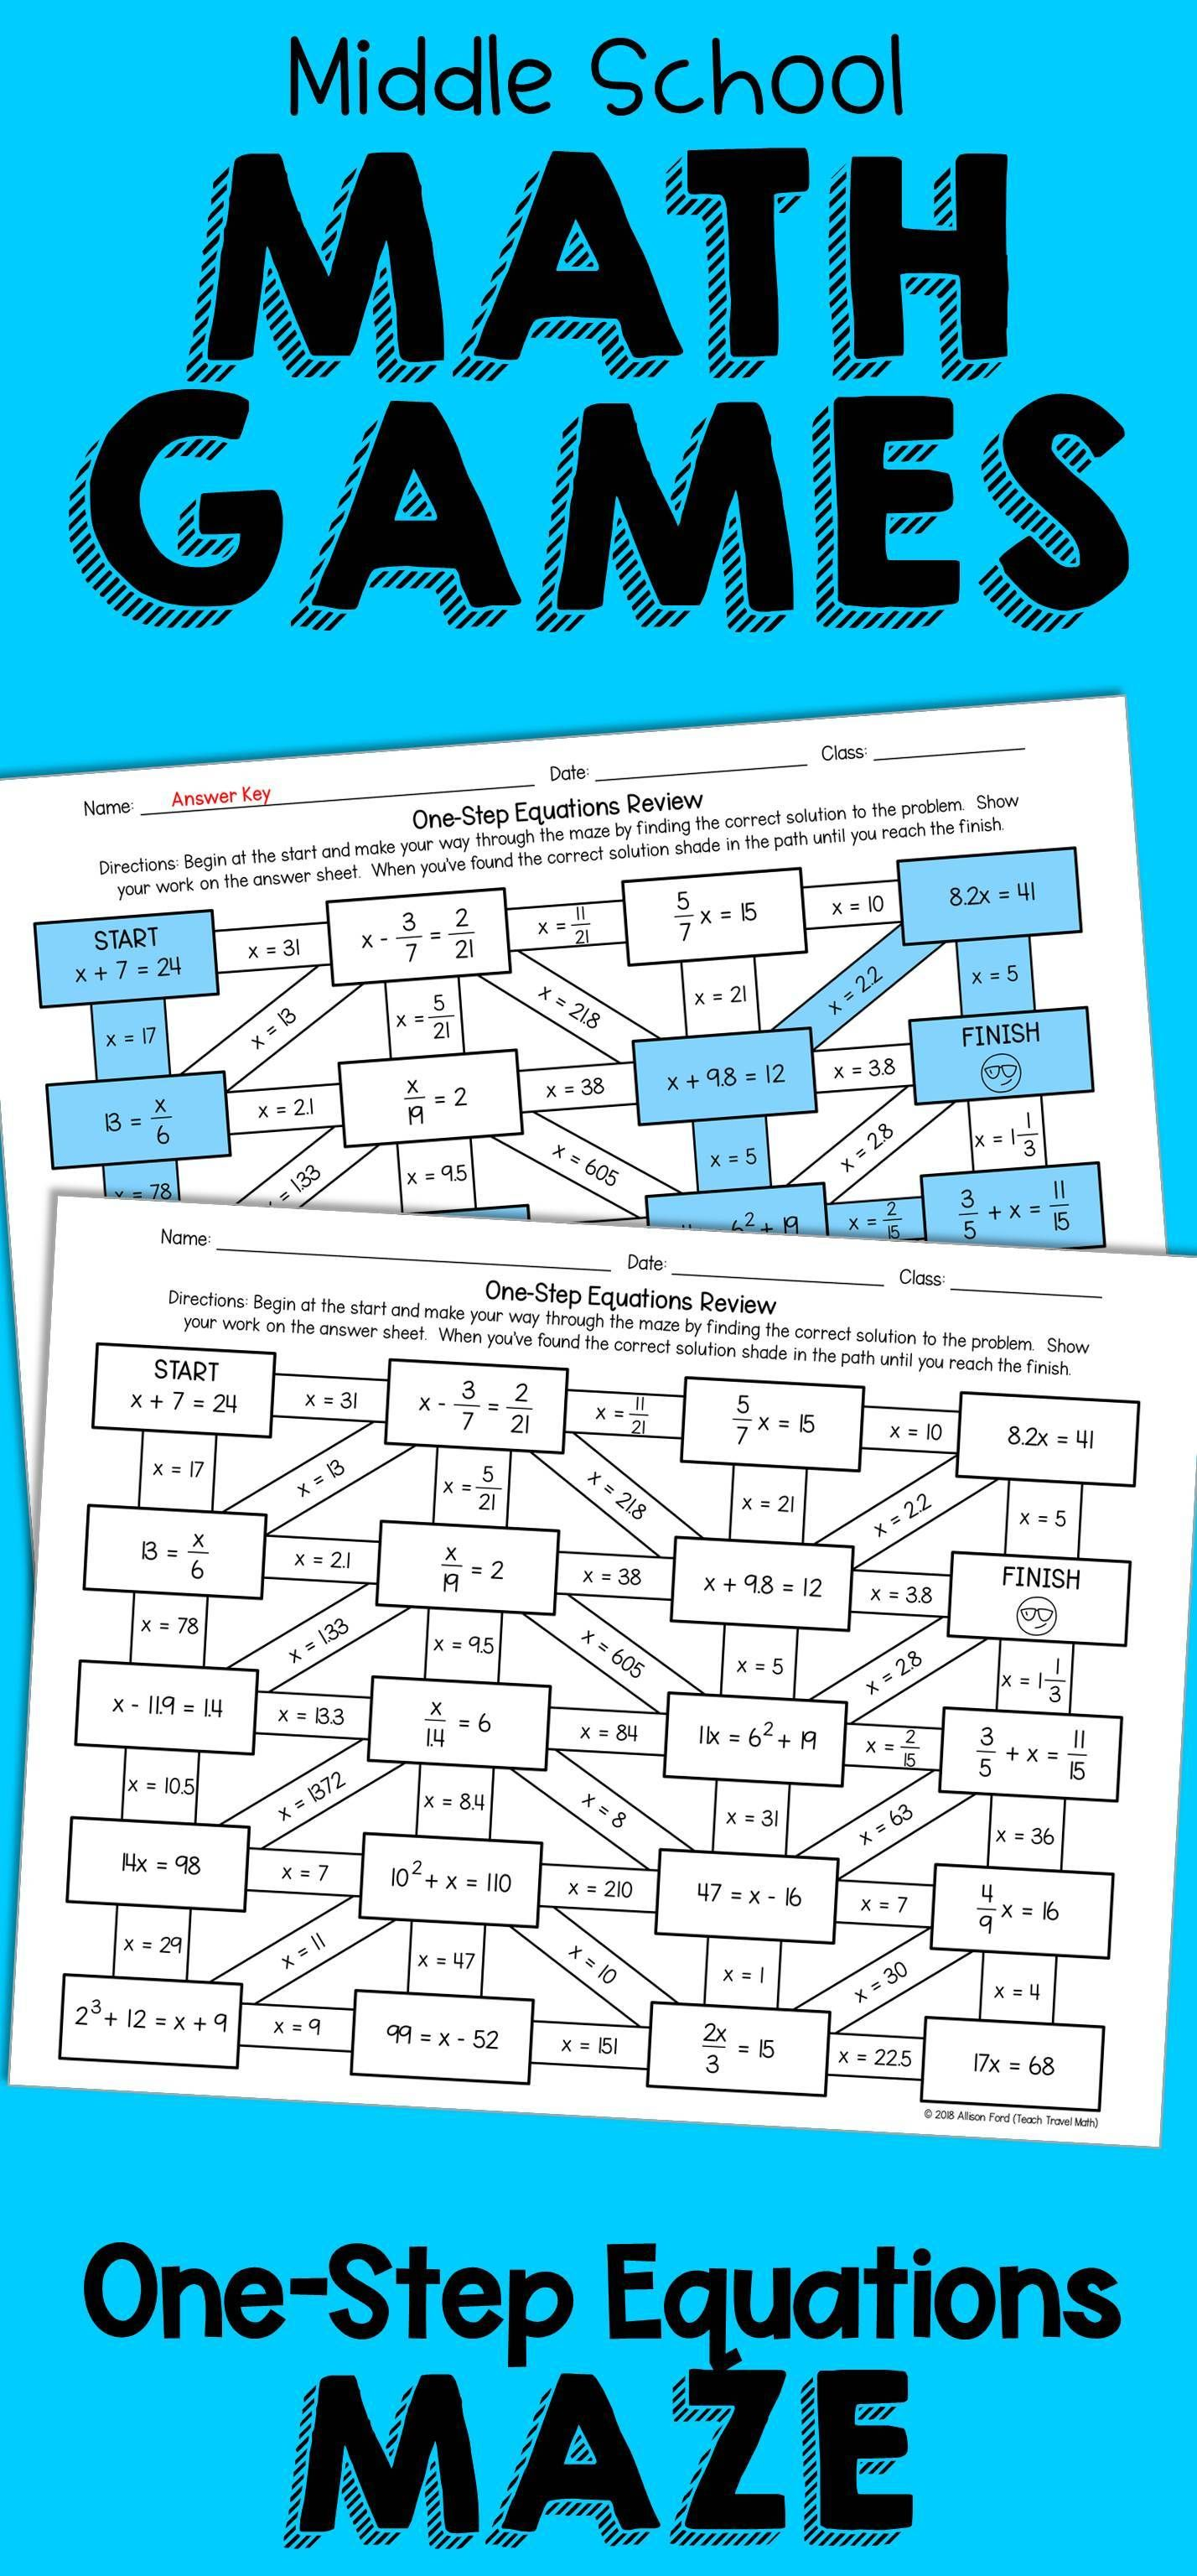 No Prep Worksheet One Step Equations Maze Activity Middle School Math Games One Step Equations Math Games Middle School Middle School Math One step equations with addition and